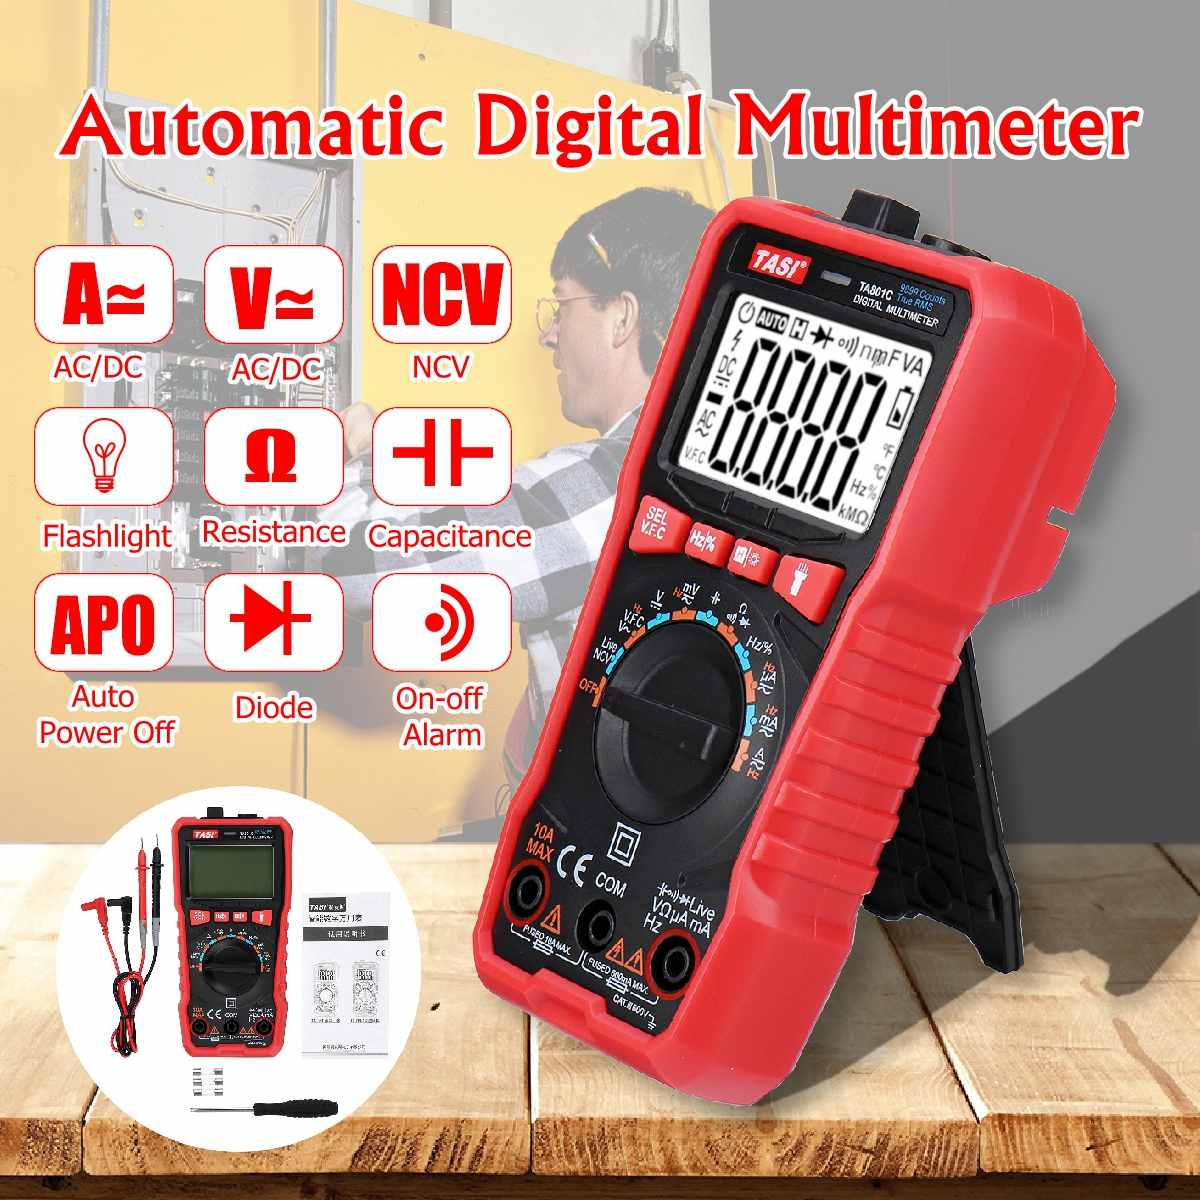 TA801C Digital Multimeter Max 9999 counts Auto Ranging AC/DC voltage meter Flash light Back light Large Screen|Multimeters| |  - title=